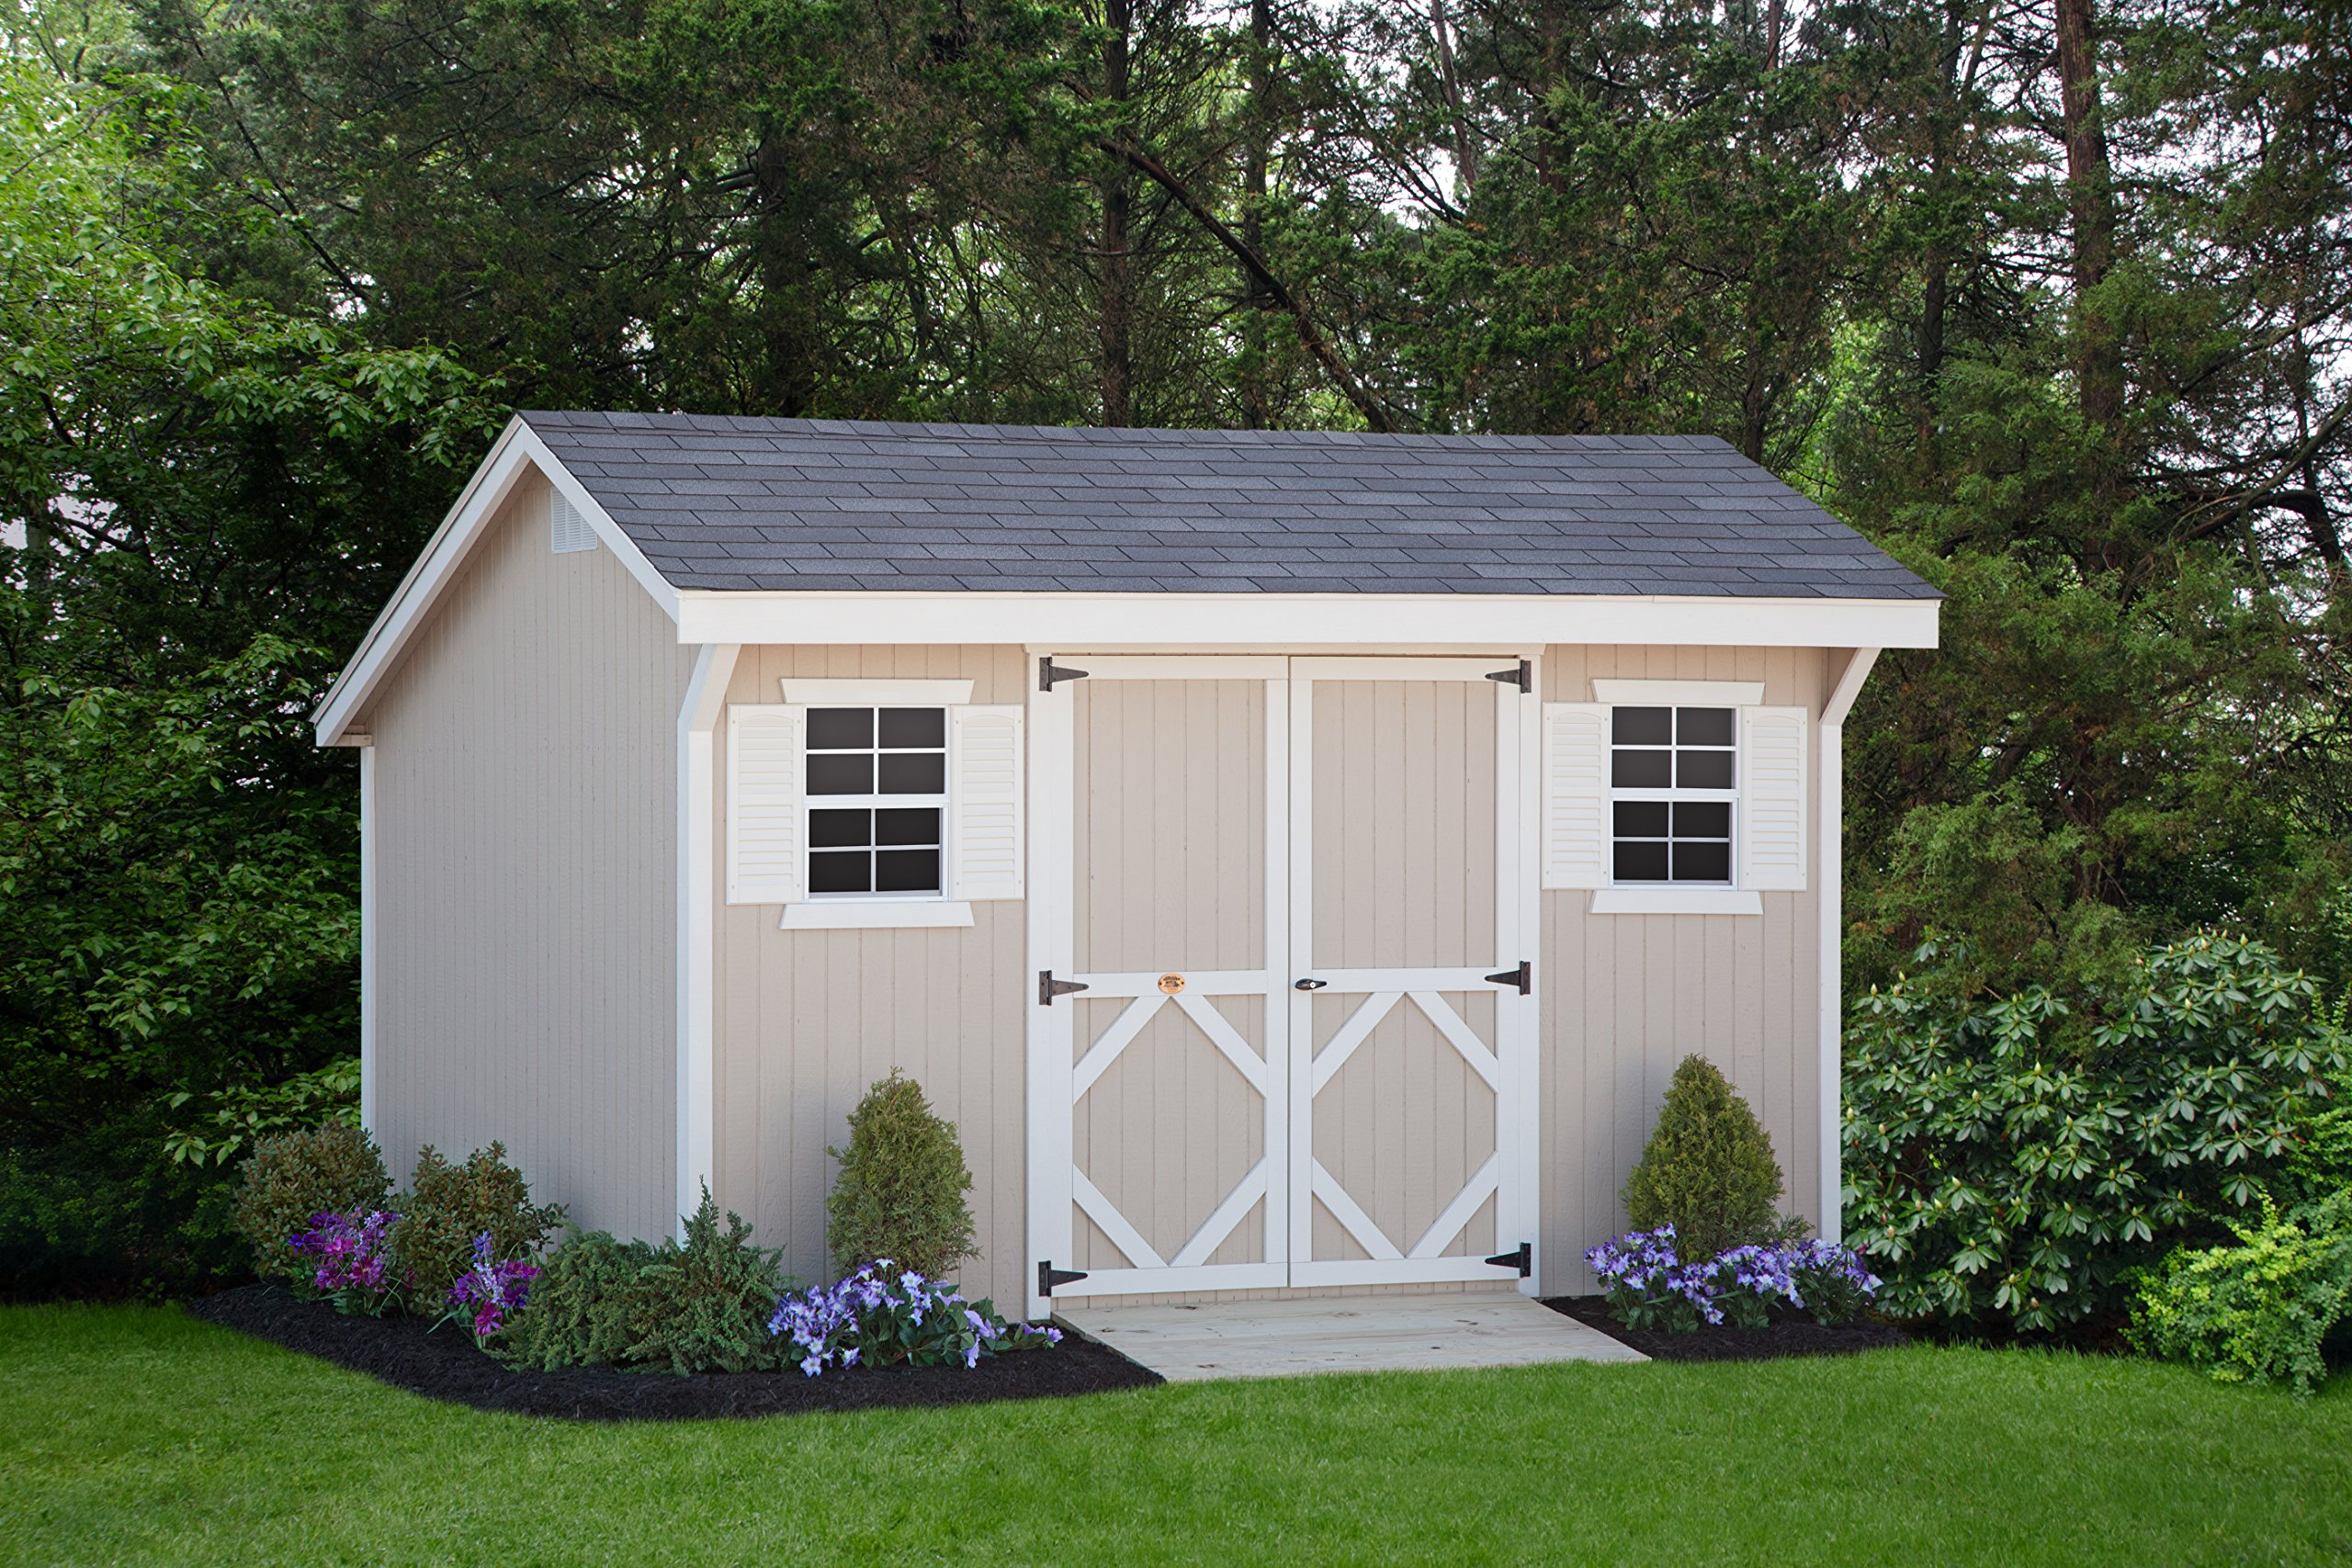 Little Cottage Company Classic Saltbox 10'x10' DIY Shed Kit by Little Cottage Company (Image #1)